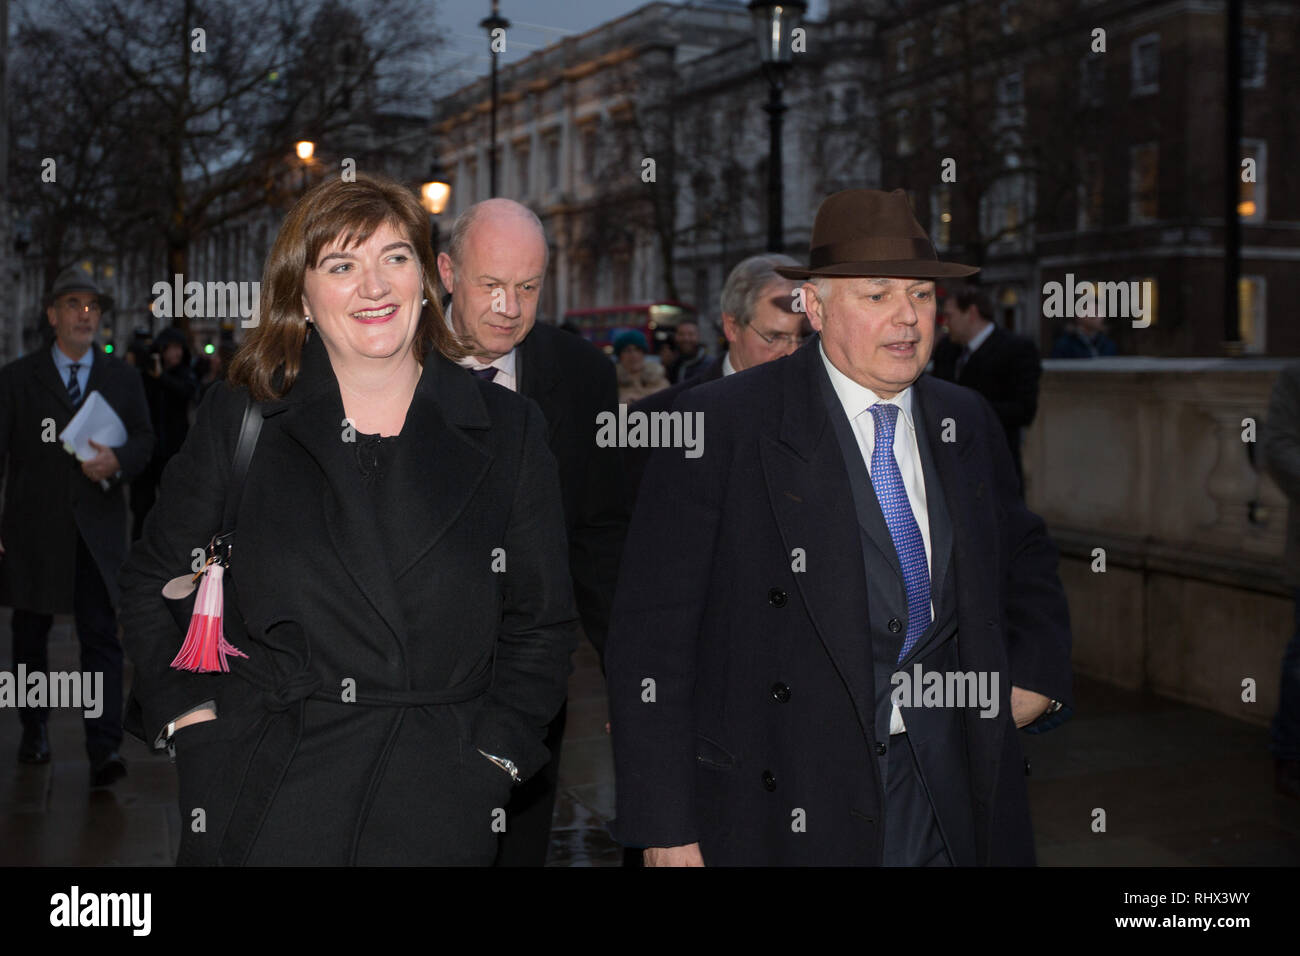 London, UK. 4th Feb, 2019. Nicky Morgan MP, Damian Green MP and Iain Duncan Smith MP leave the Cabinet Office after a meeting . Credit: George Cracknell Wright/Alamy Live News - Stock Image